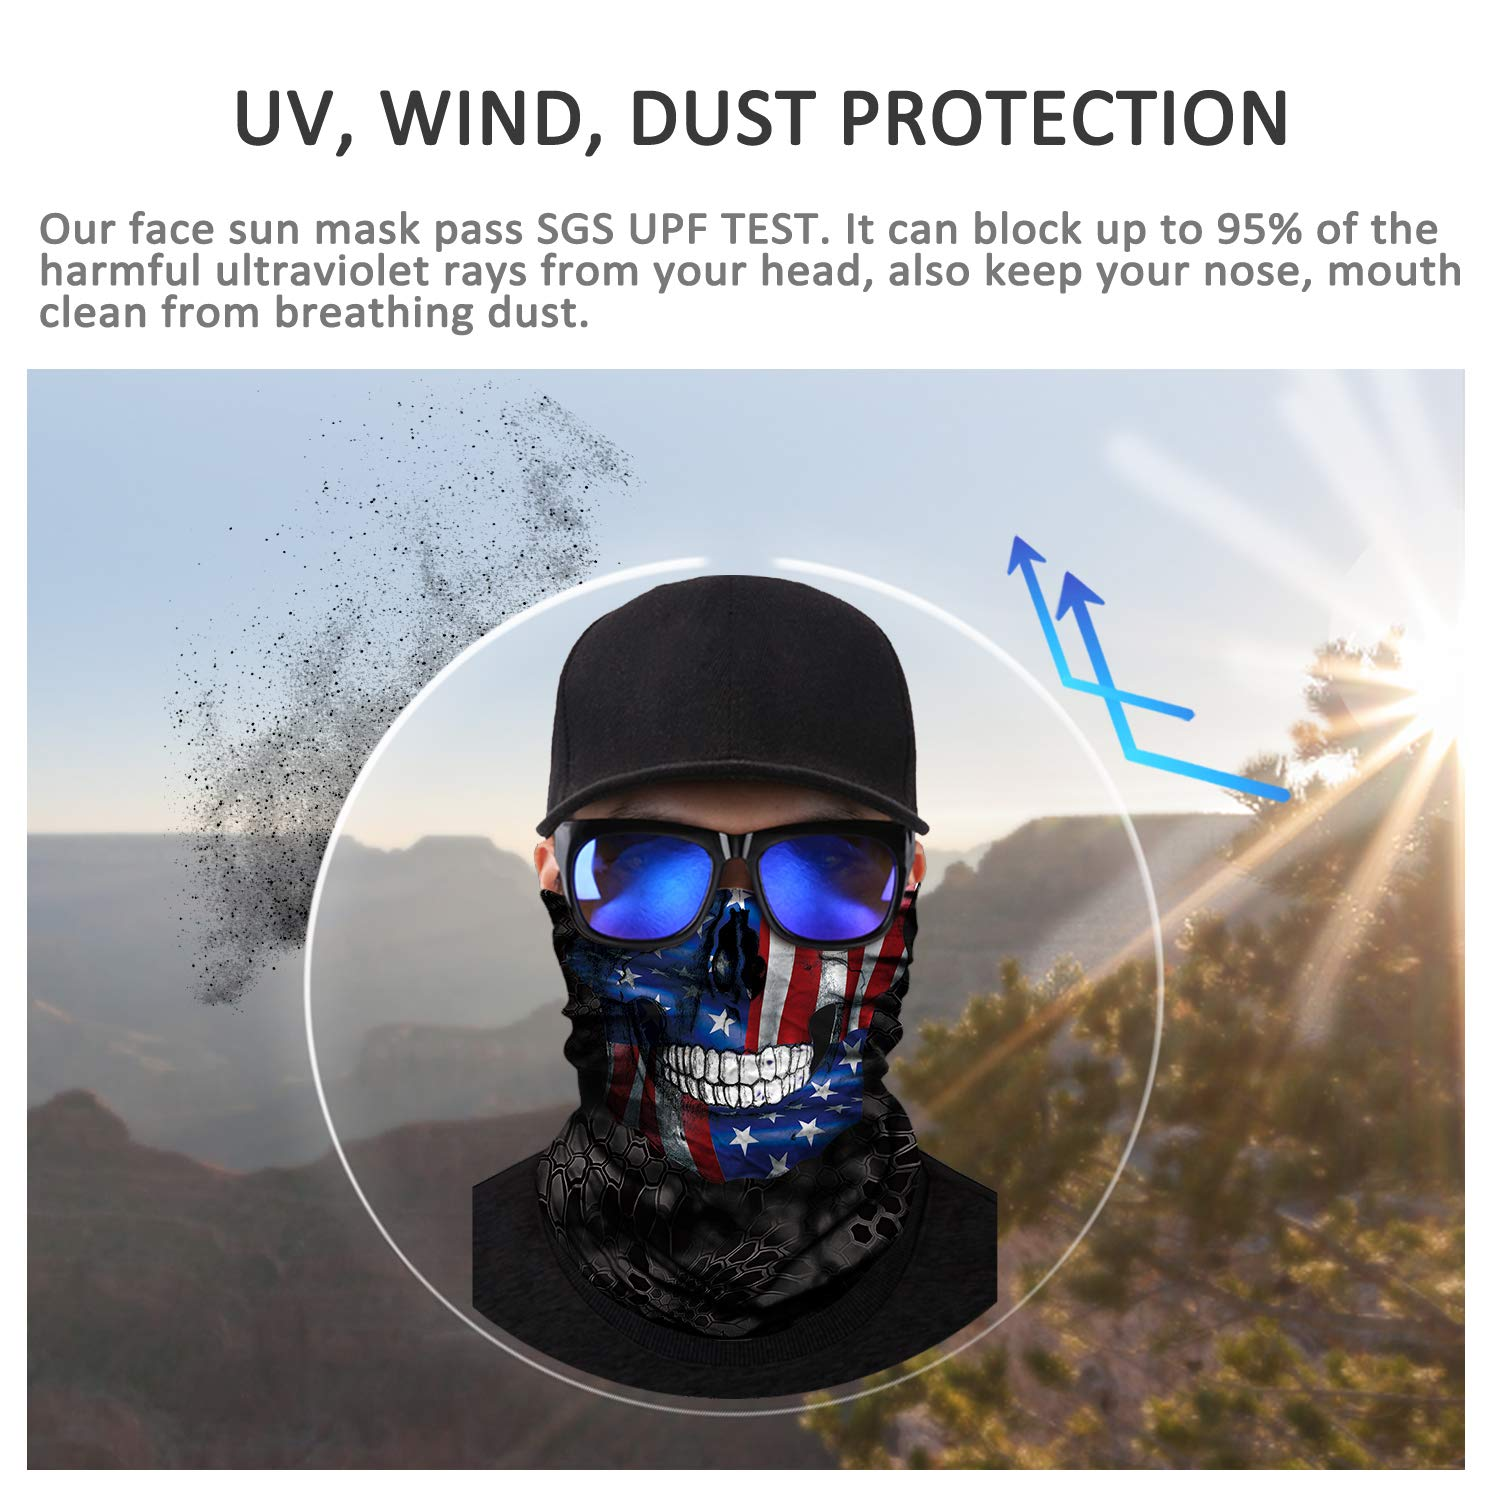 3D Seamless Skeleton Half Face Bandanas Balaclava for Riding Hunting JOEYOUNG Motorcycle Skull Face Mask for Men Women UV Sun Mask Dust Wind Neck Gaiter Halloween Party Clown Headwear Tube Mask